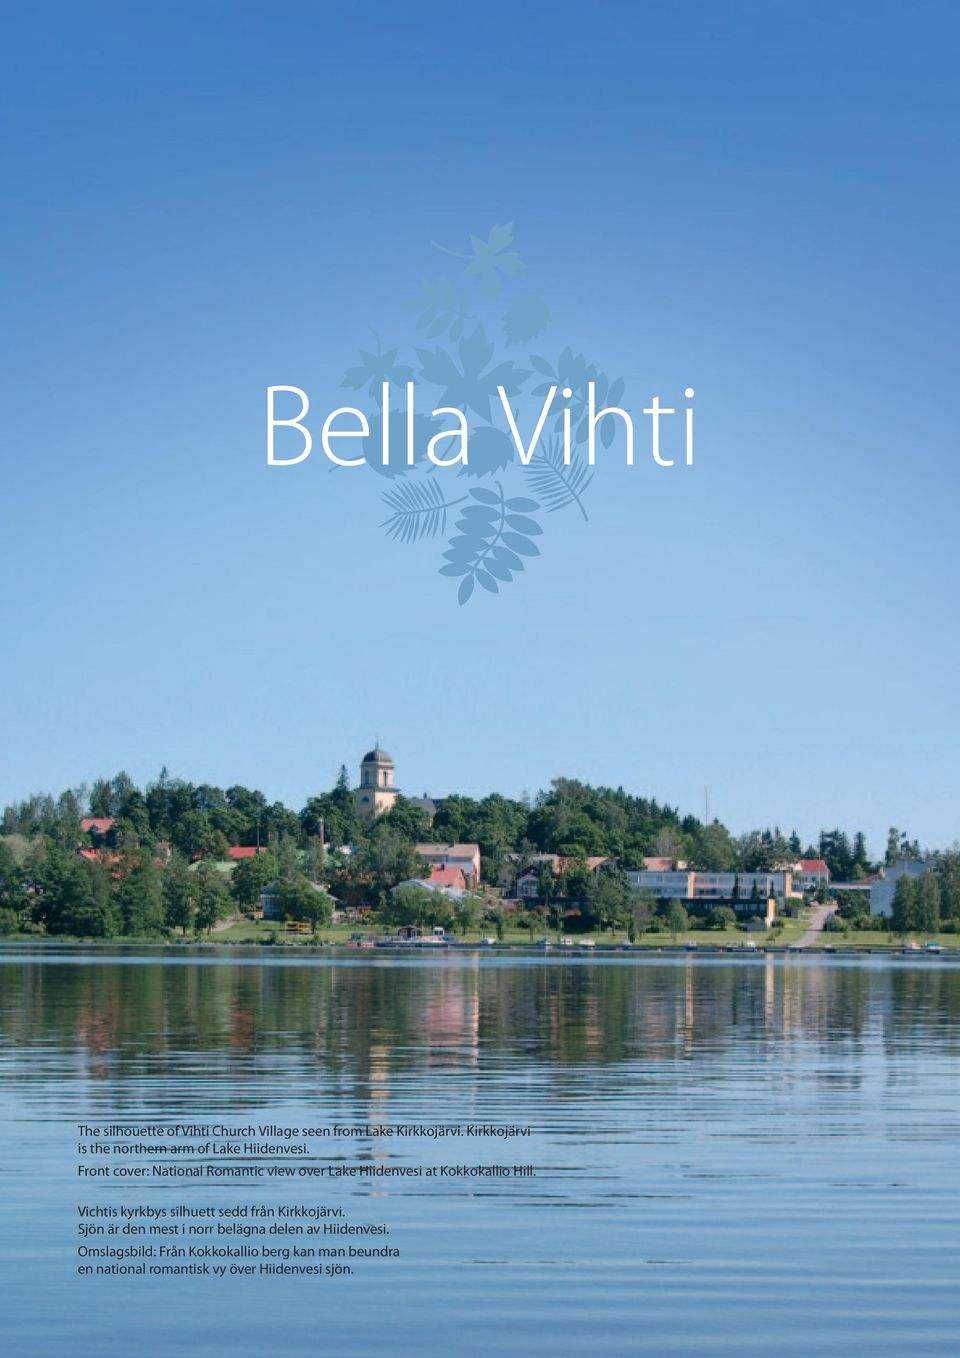 Front cover: National Romantic view over Lake Hiidenvesi at Kokkokallio Hill.